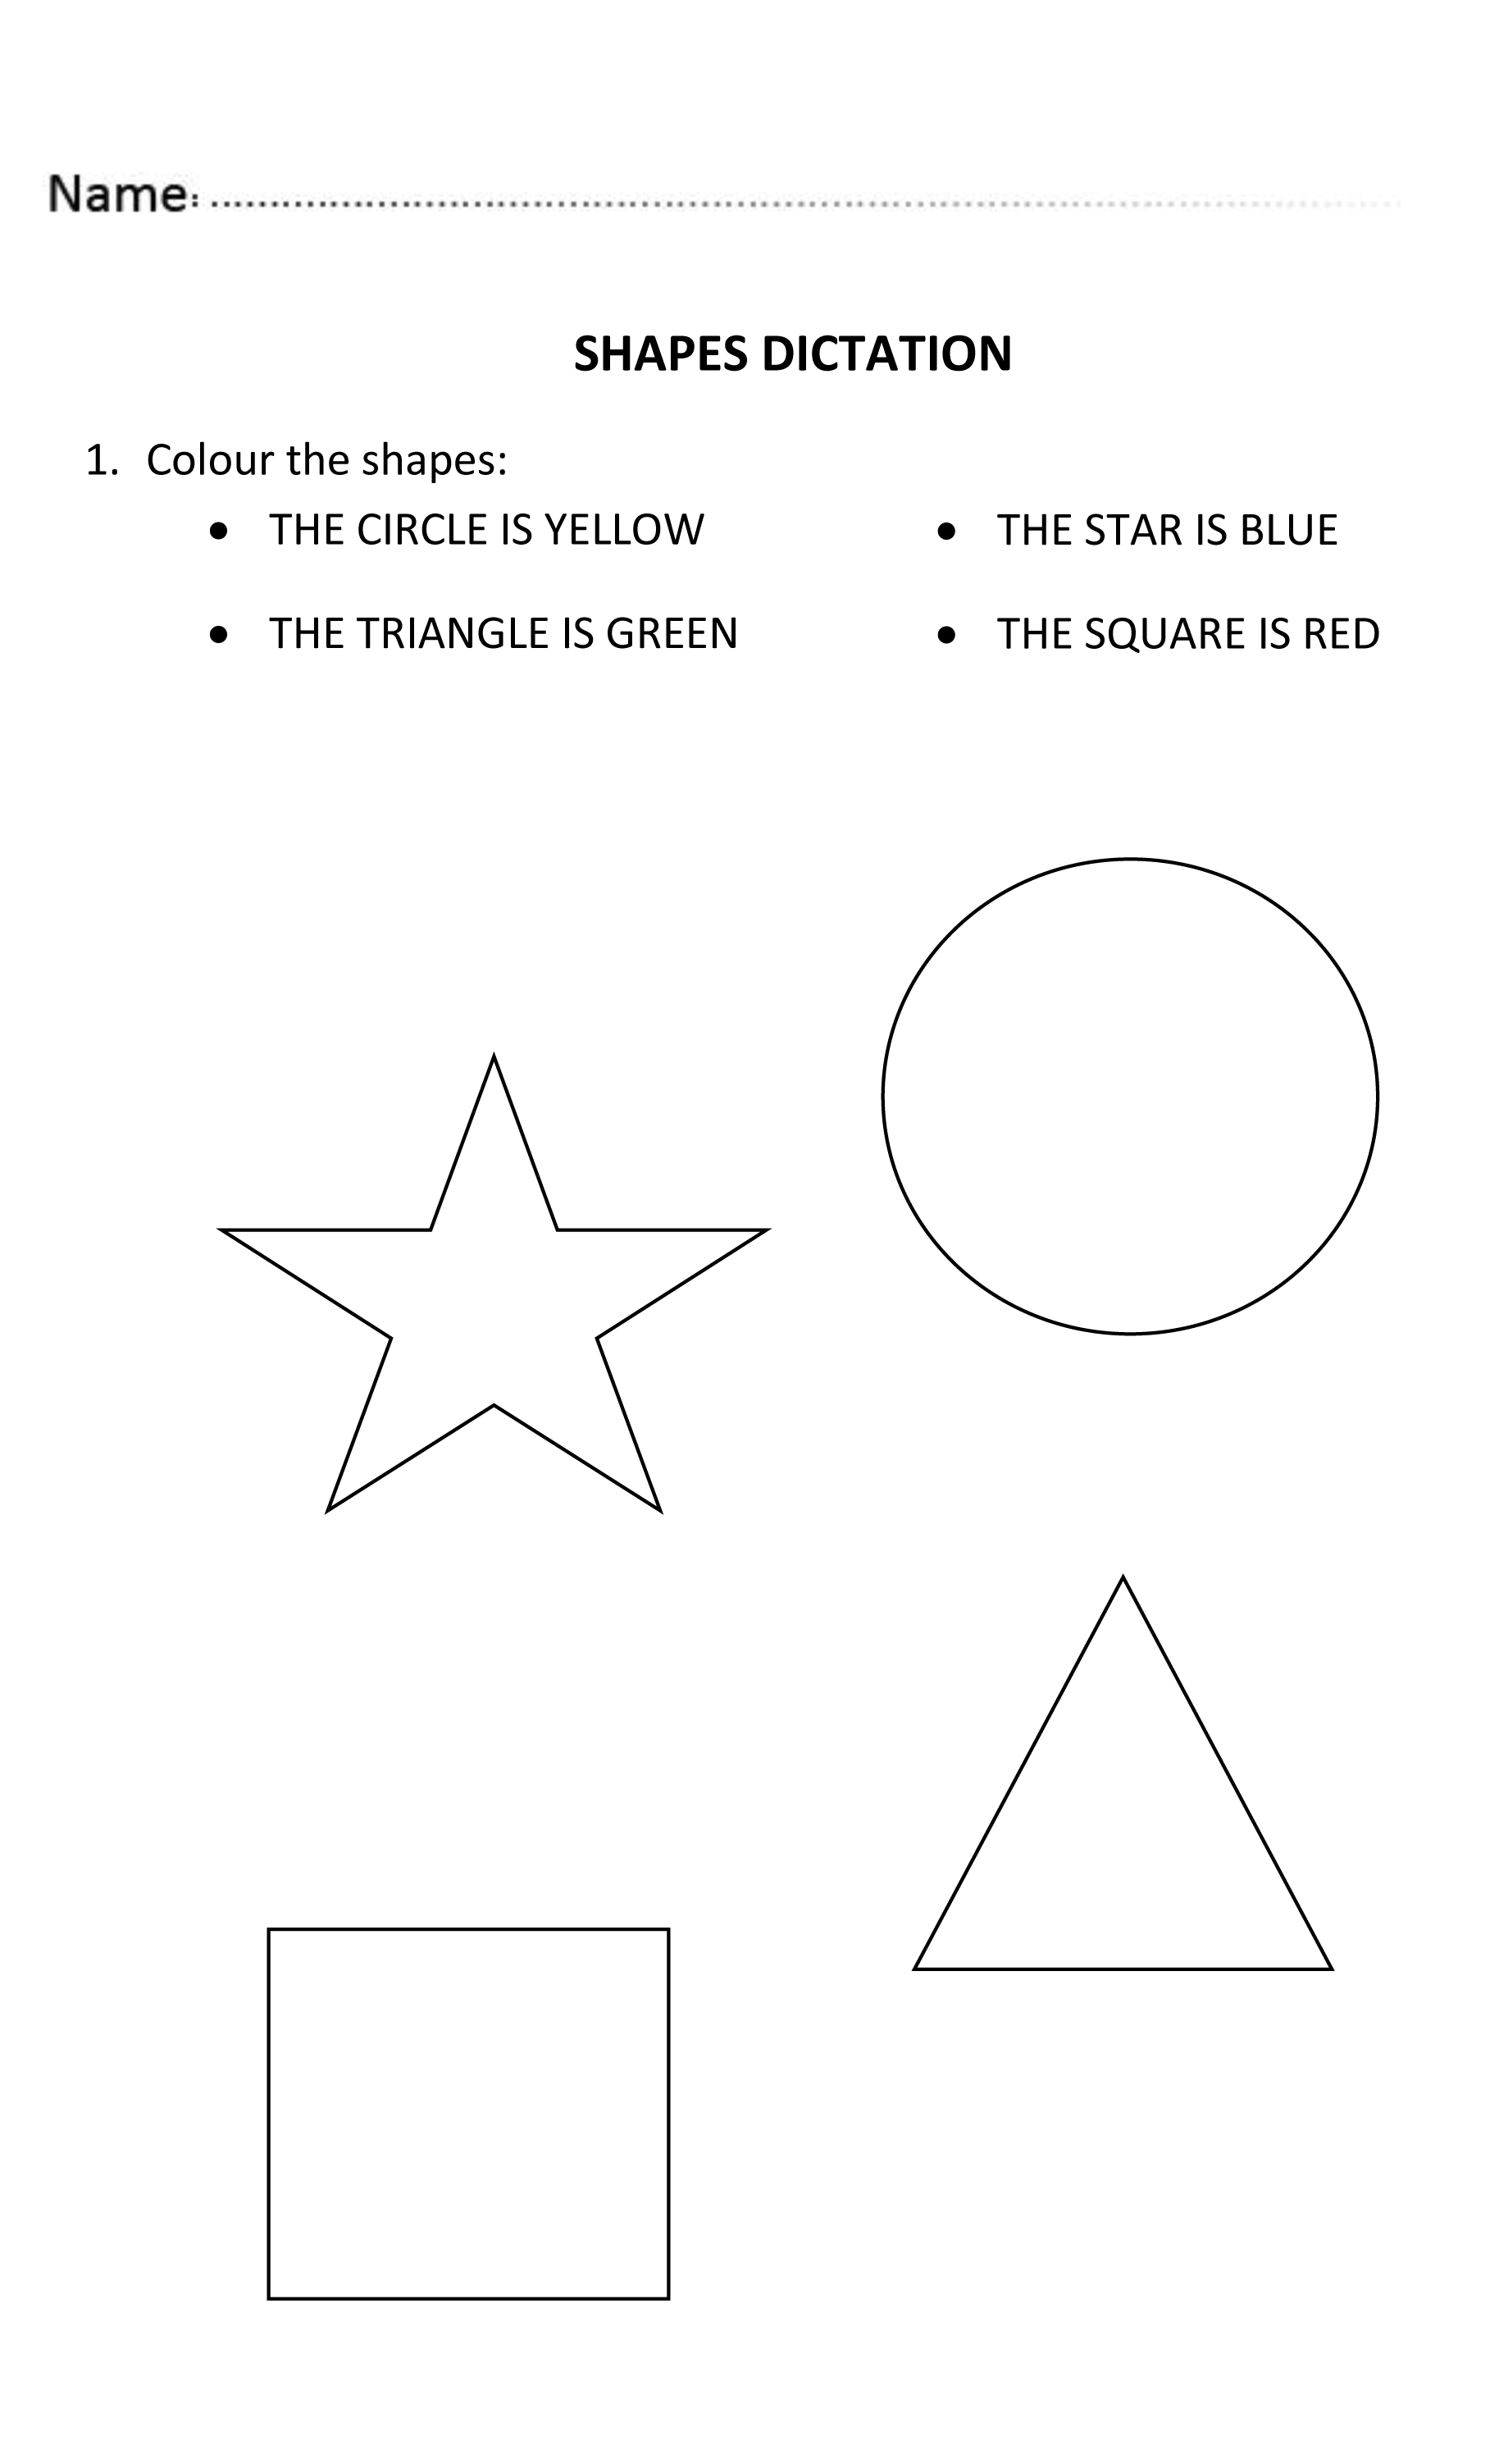 Fun Shapes Dictation For Nursery And Reception Students